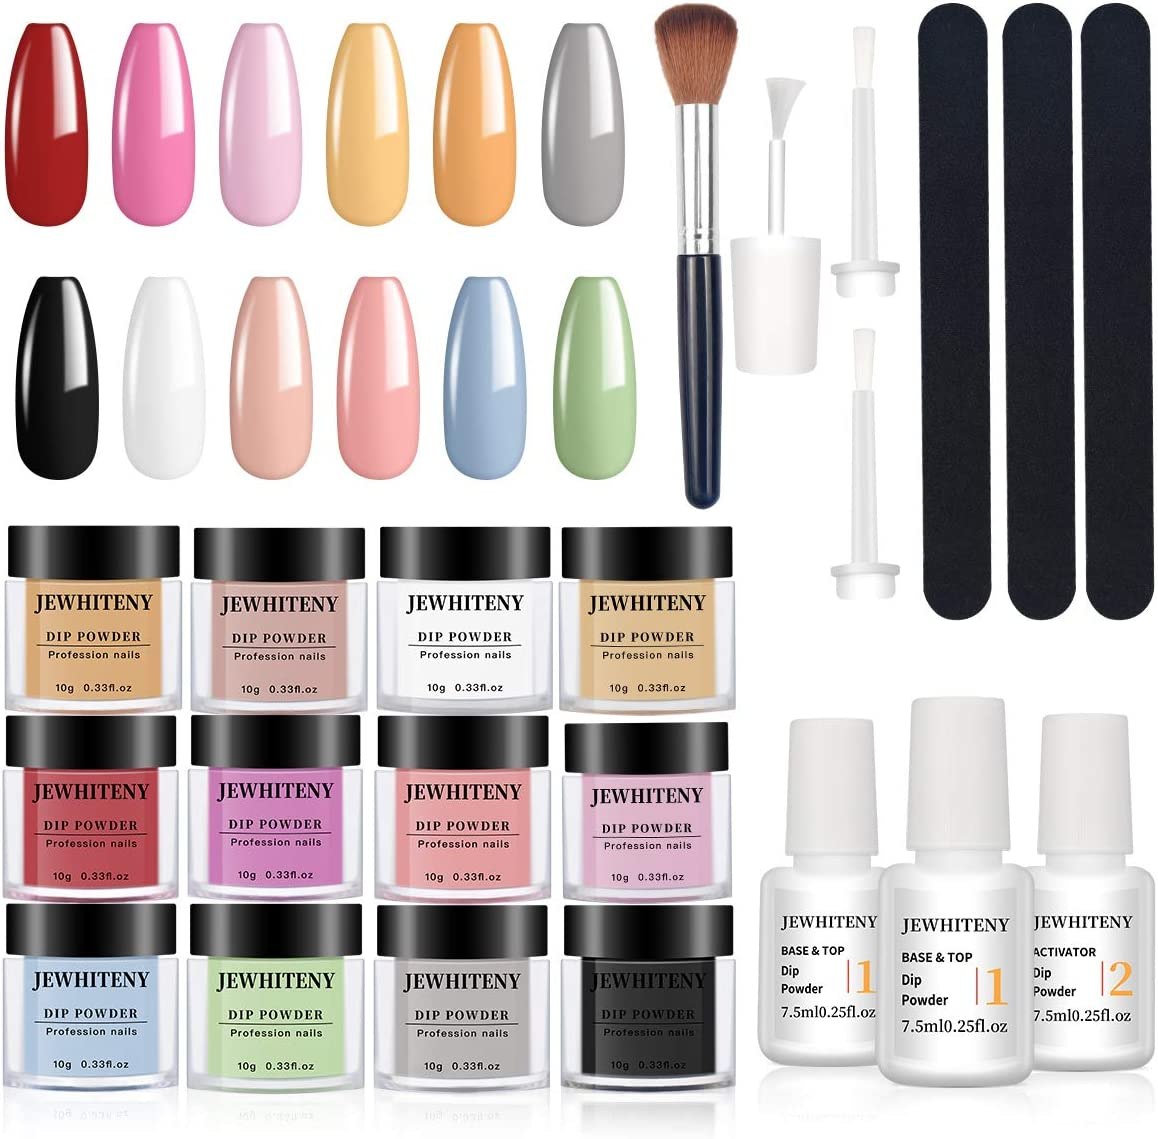 Nail Dip Powder Kit for Starter with 12 Color, Acrylic Dip Nails Powder Starter Kit Include 2 in 1 Base& Top Coat and Activator, No Lamp Needed Quick Do Nail Portable Kit